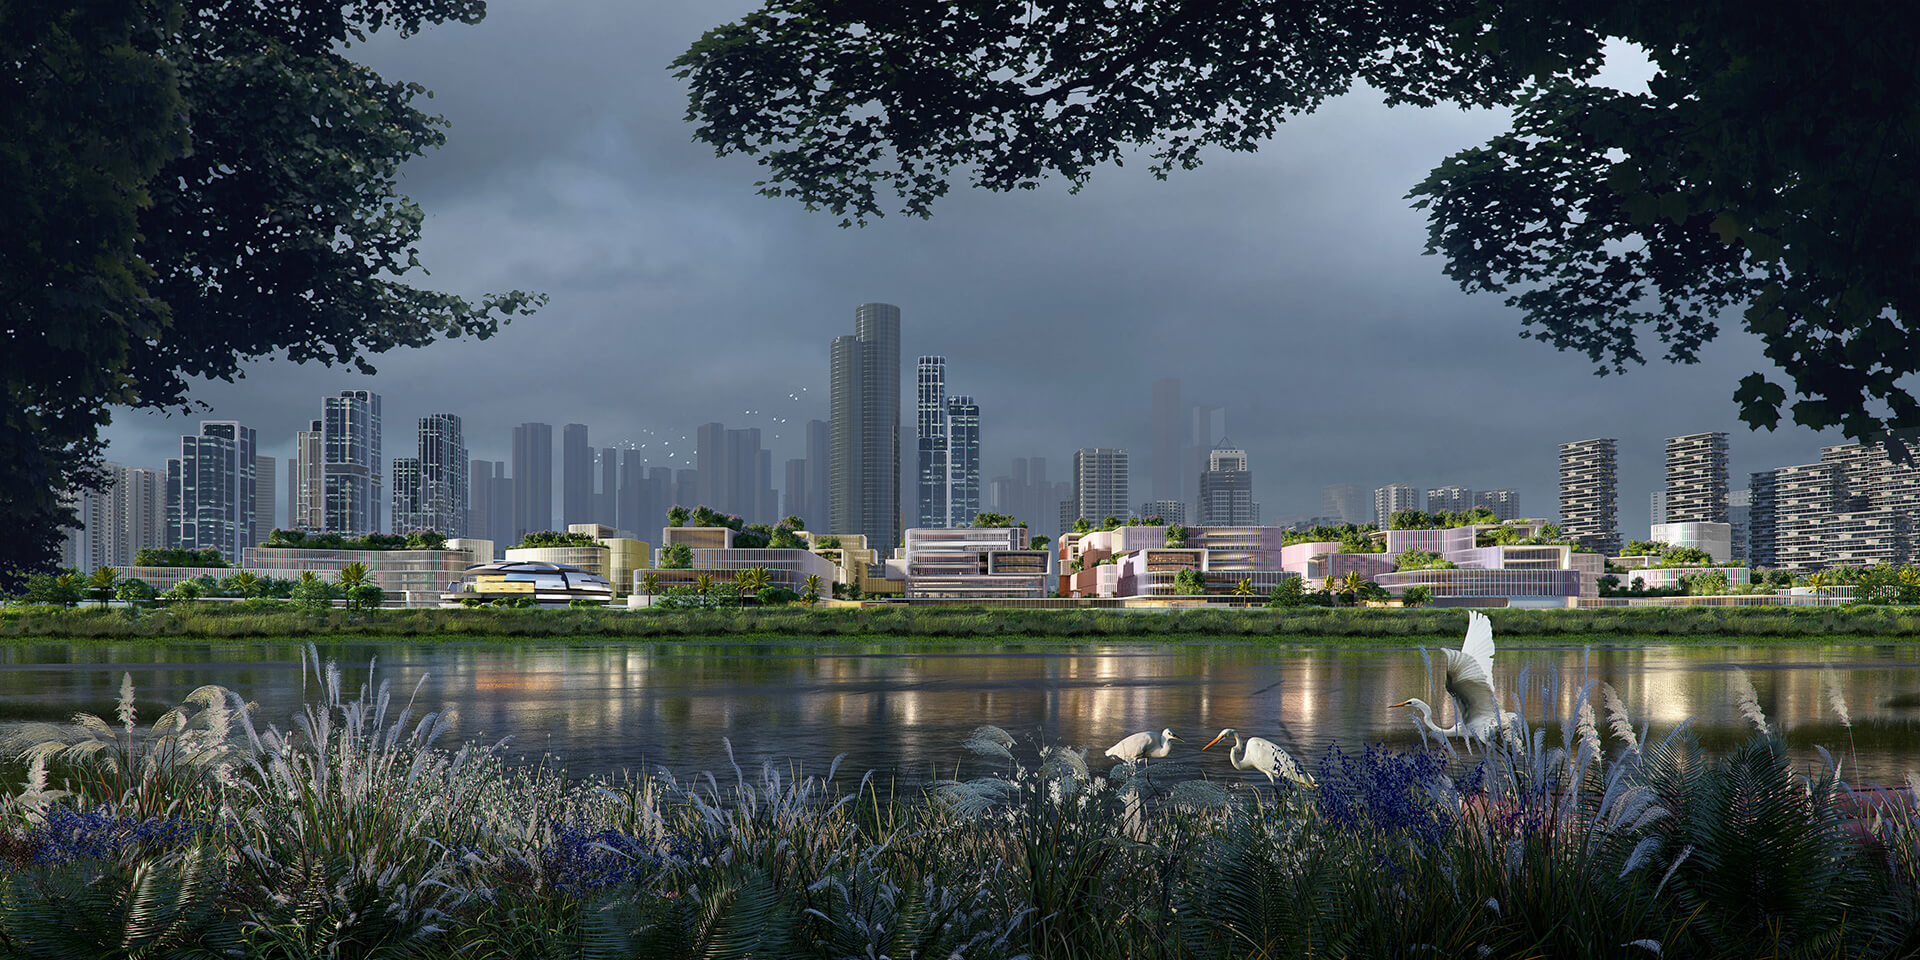 The new masterplan looks at redeveloping the Huangang port along Shenzhen river as a nodal hub | Huanggang Port Area Masterplan | Zaha Hadid Architects | STIRworld